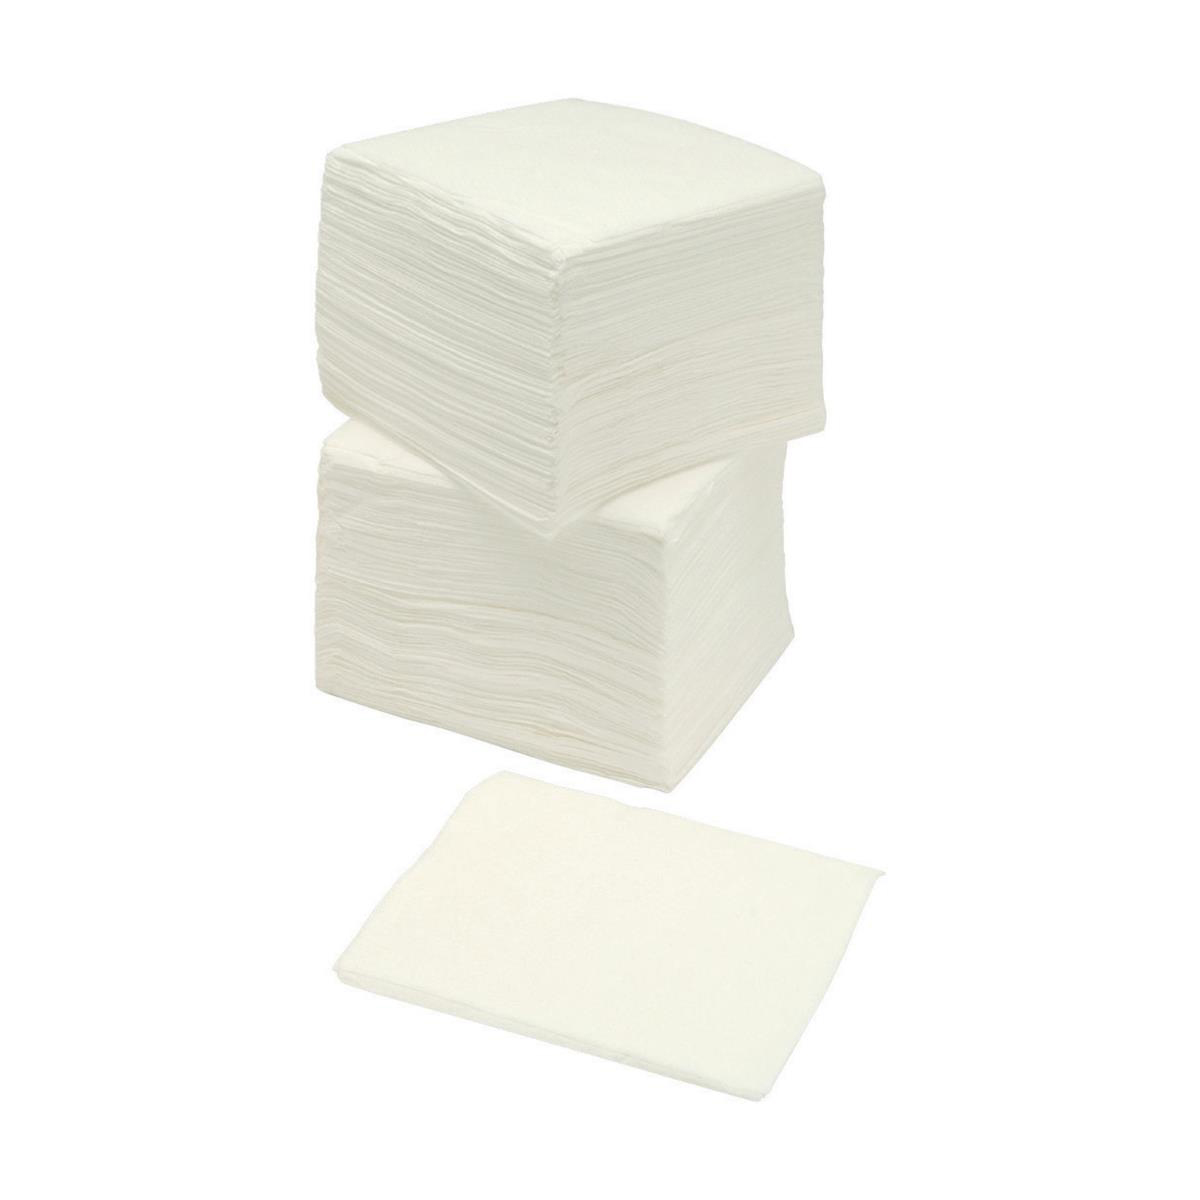 5 Star Facilities Napkin 2-ply 400x400mm White Pack 100